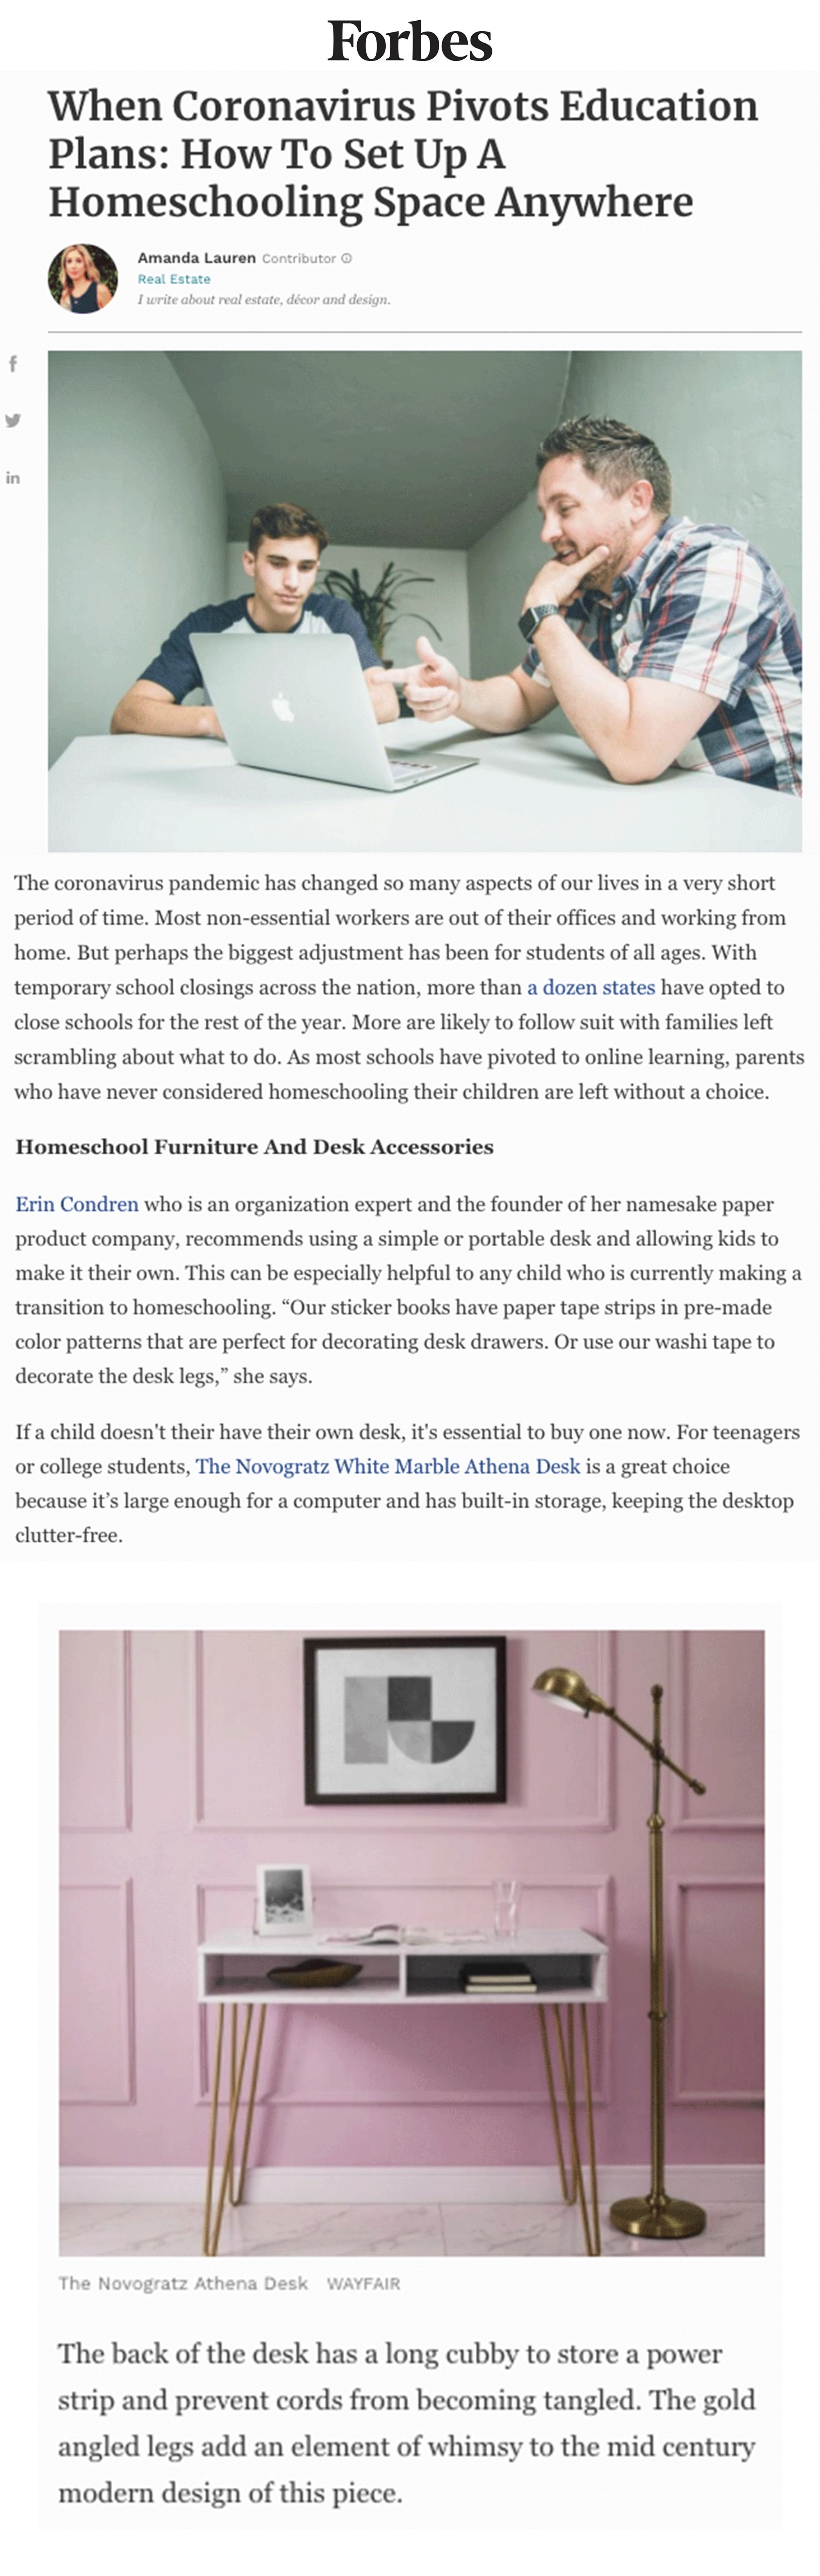 Forbes | When Coronavirus Pivots Education Plans: How To Set Up A Homeschooling Space Anywhere